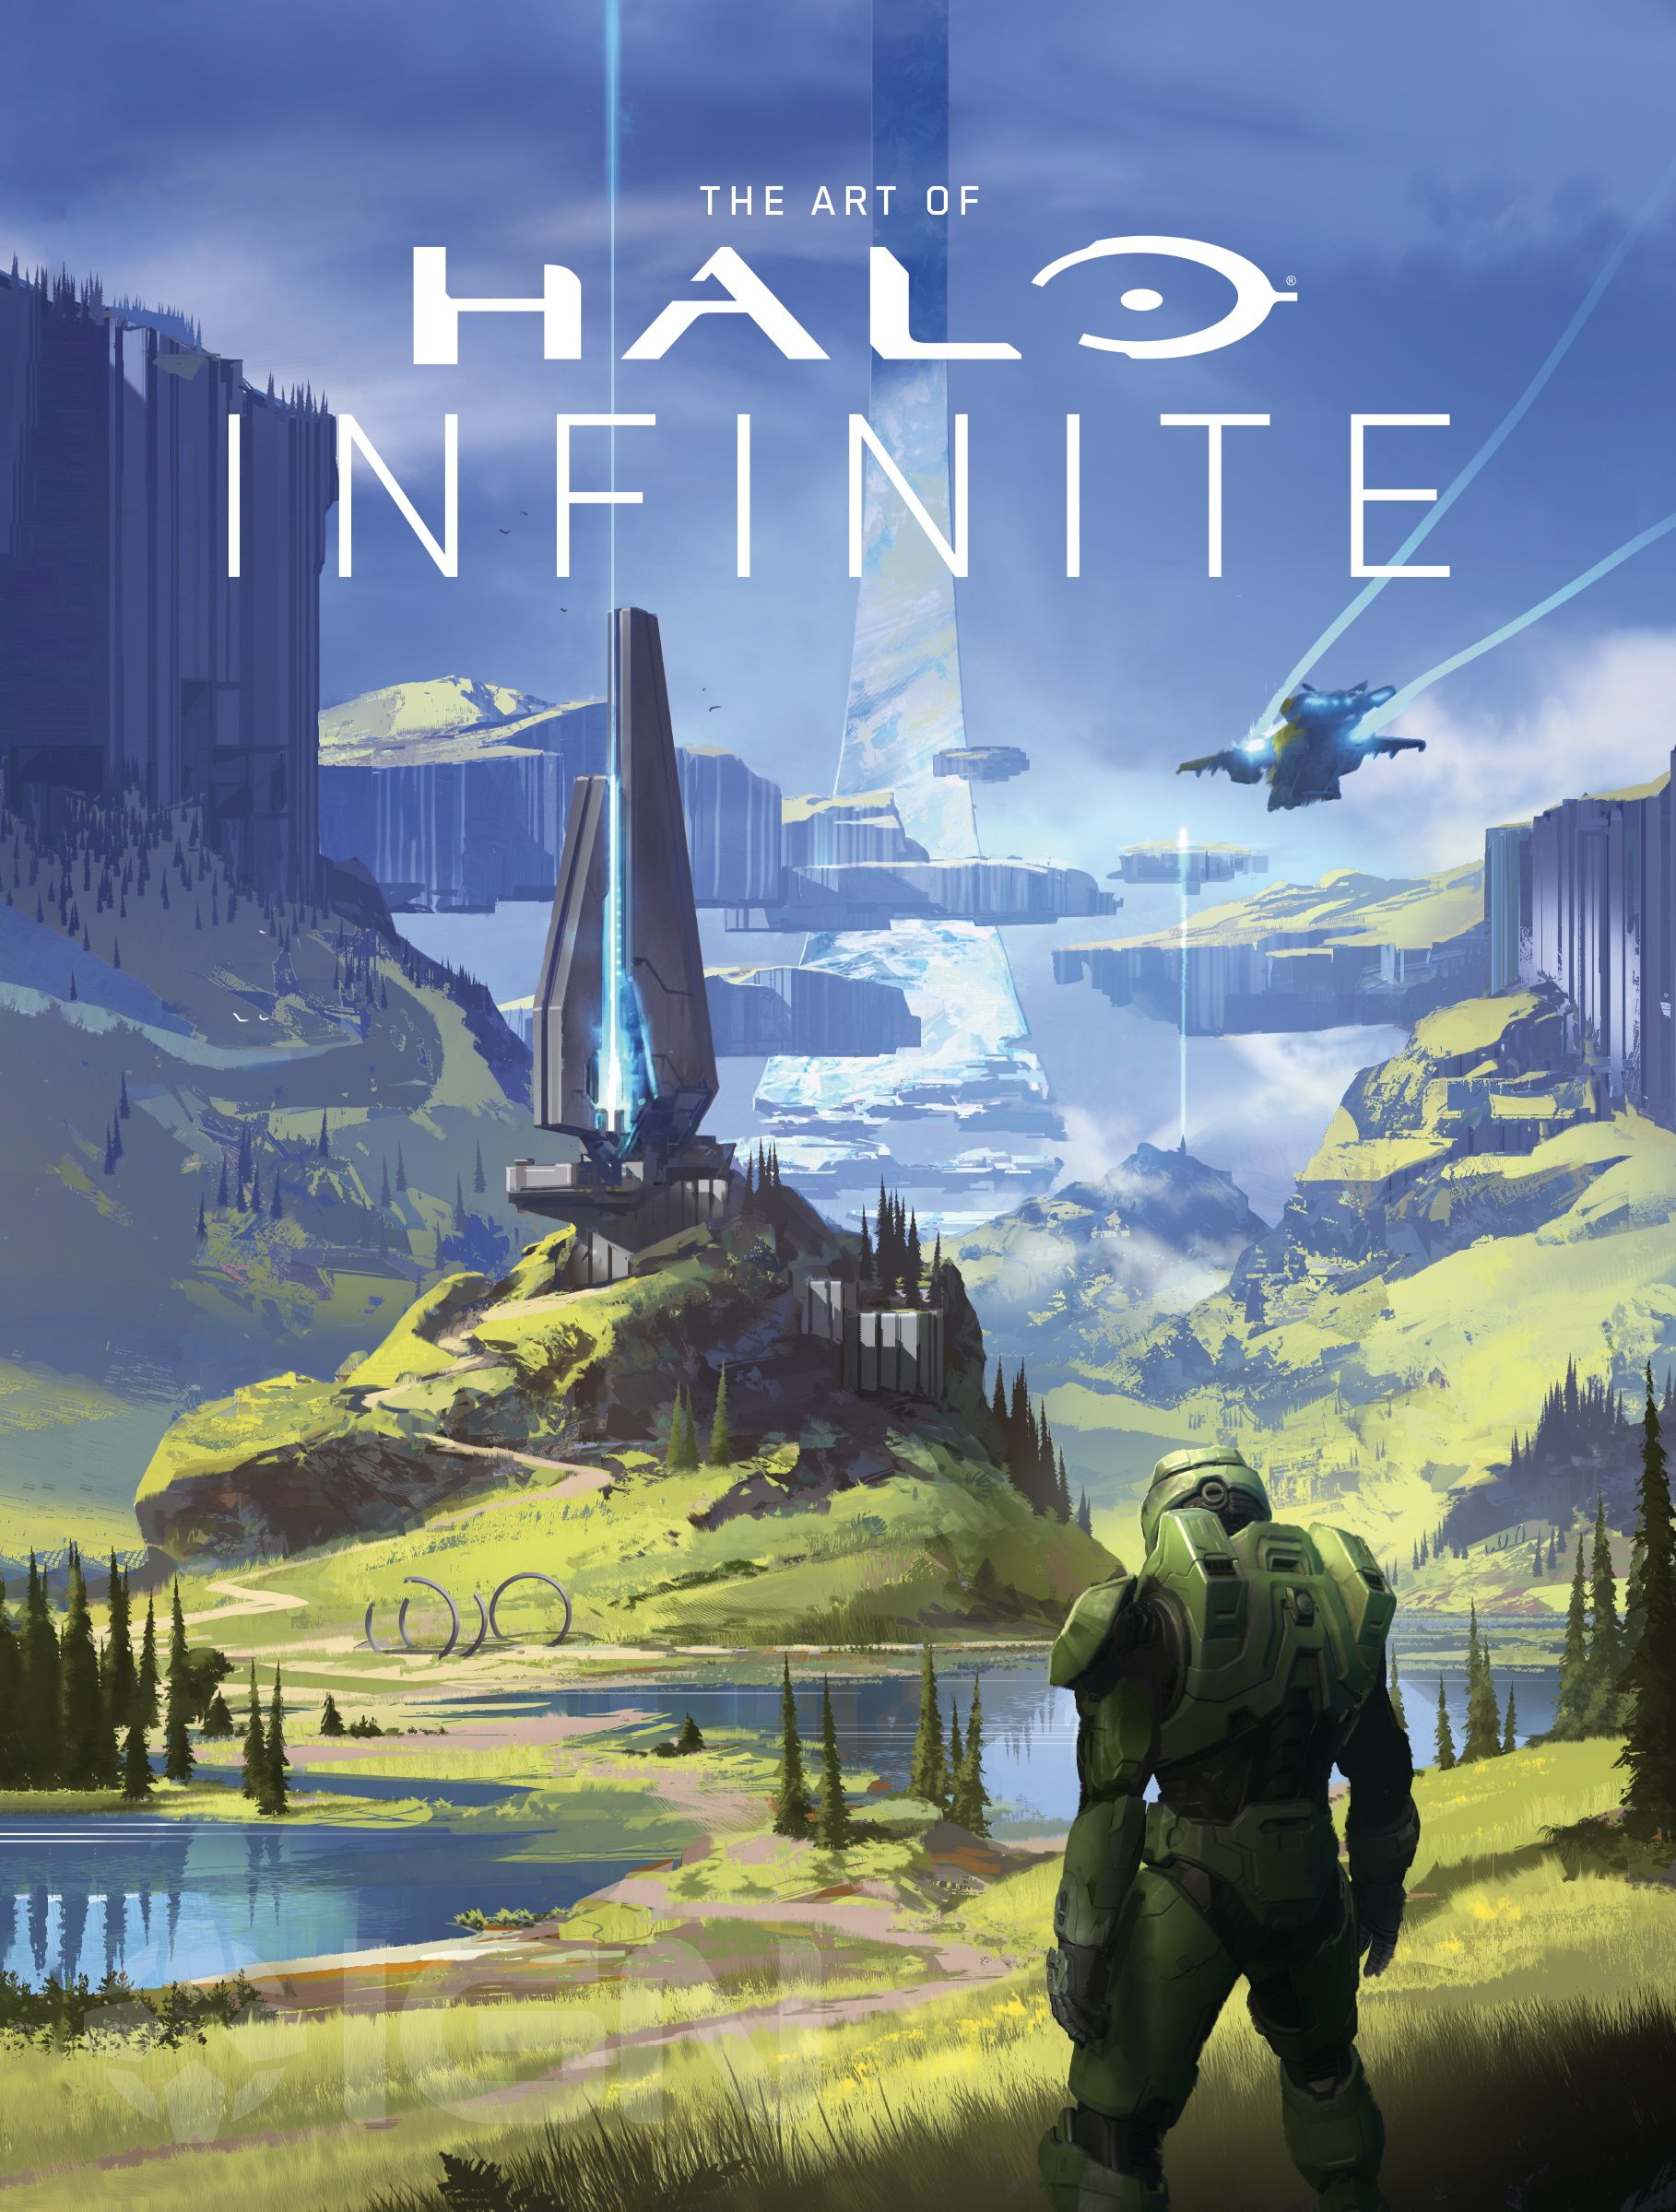 The Art Of Halo Infinite Exclusive Cover Reveal Ign In 2020 Dark Horse Halo Halo Spartan